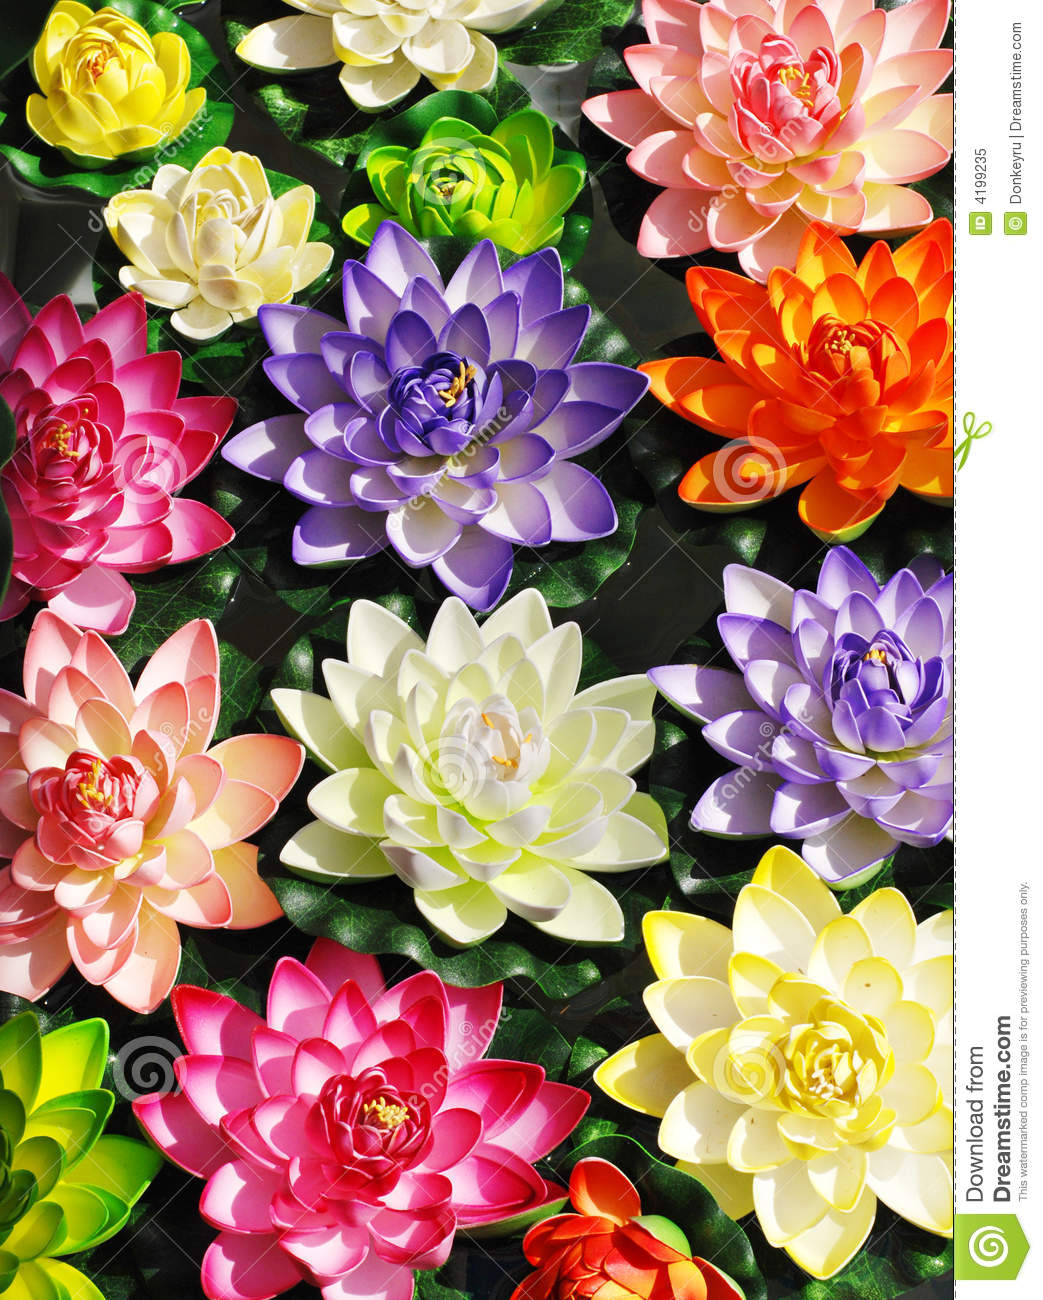 Colorful lotus flowers stock image image of flower feminine 4199235 colorful lotus flowers mightylinksfo